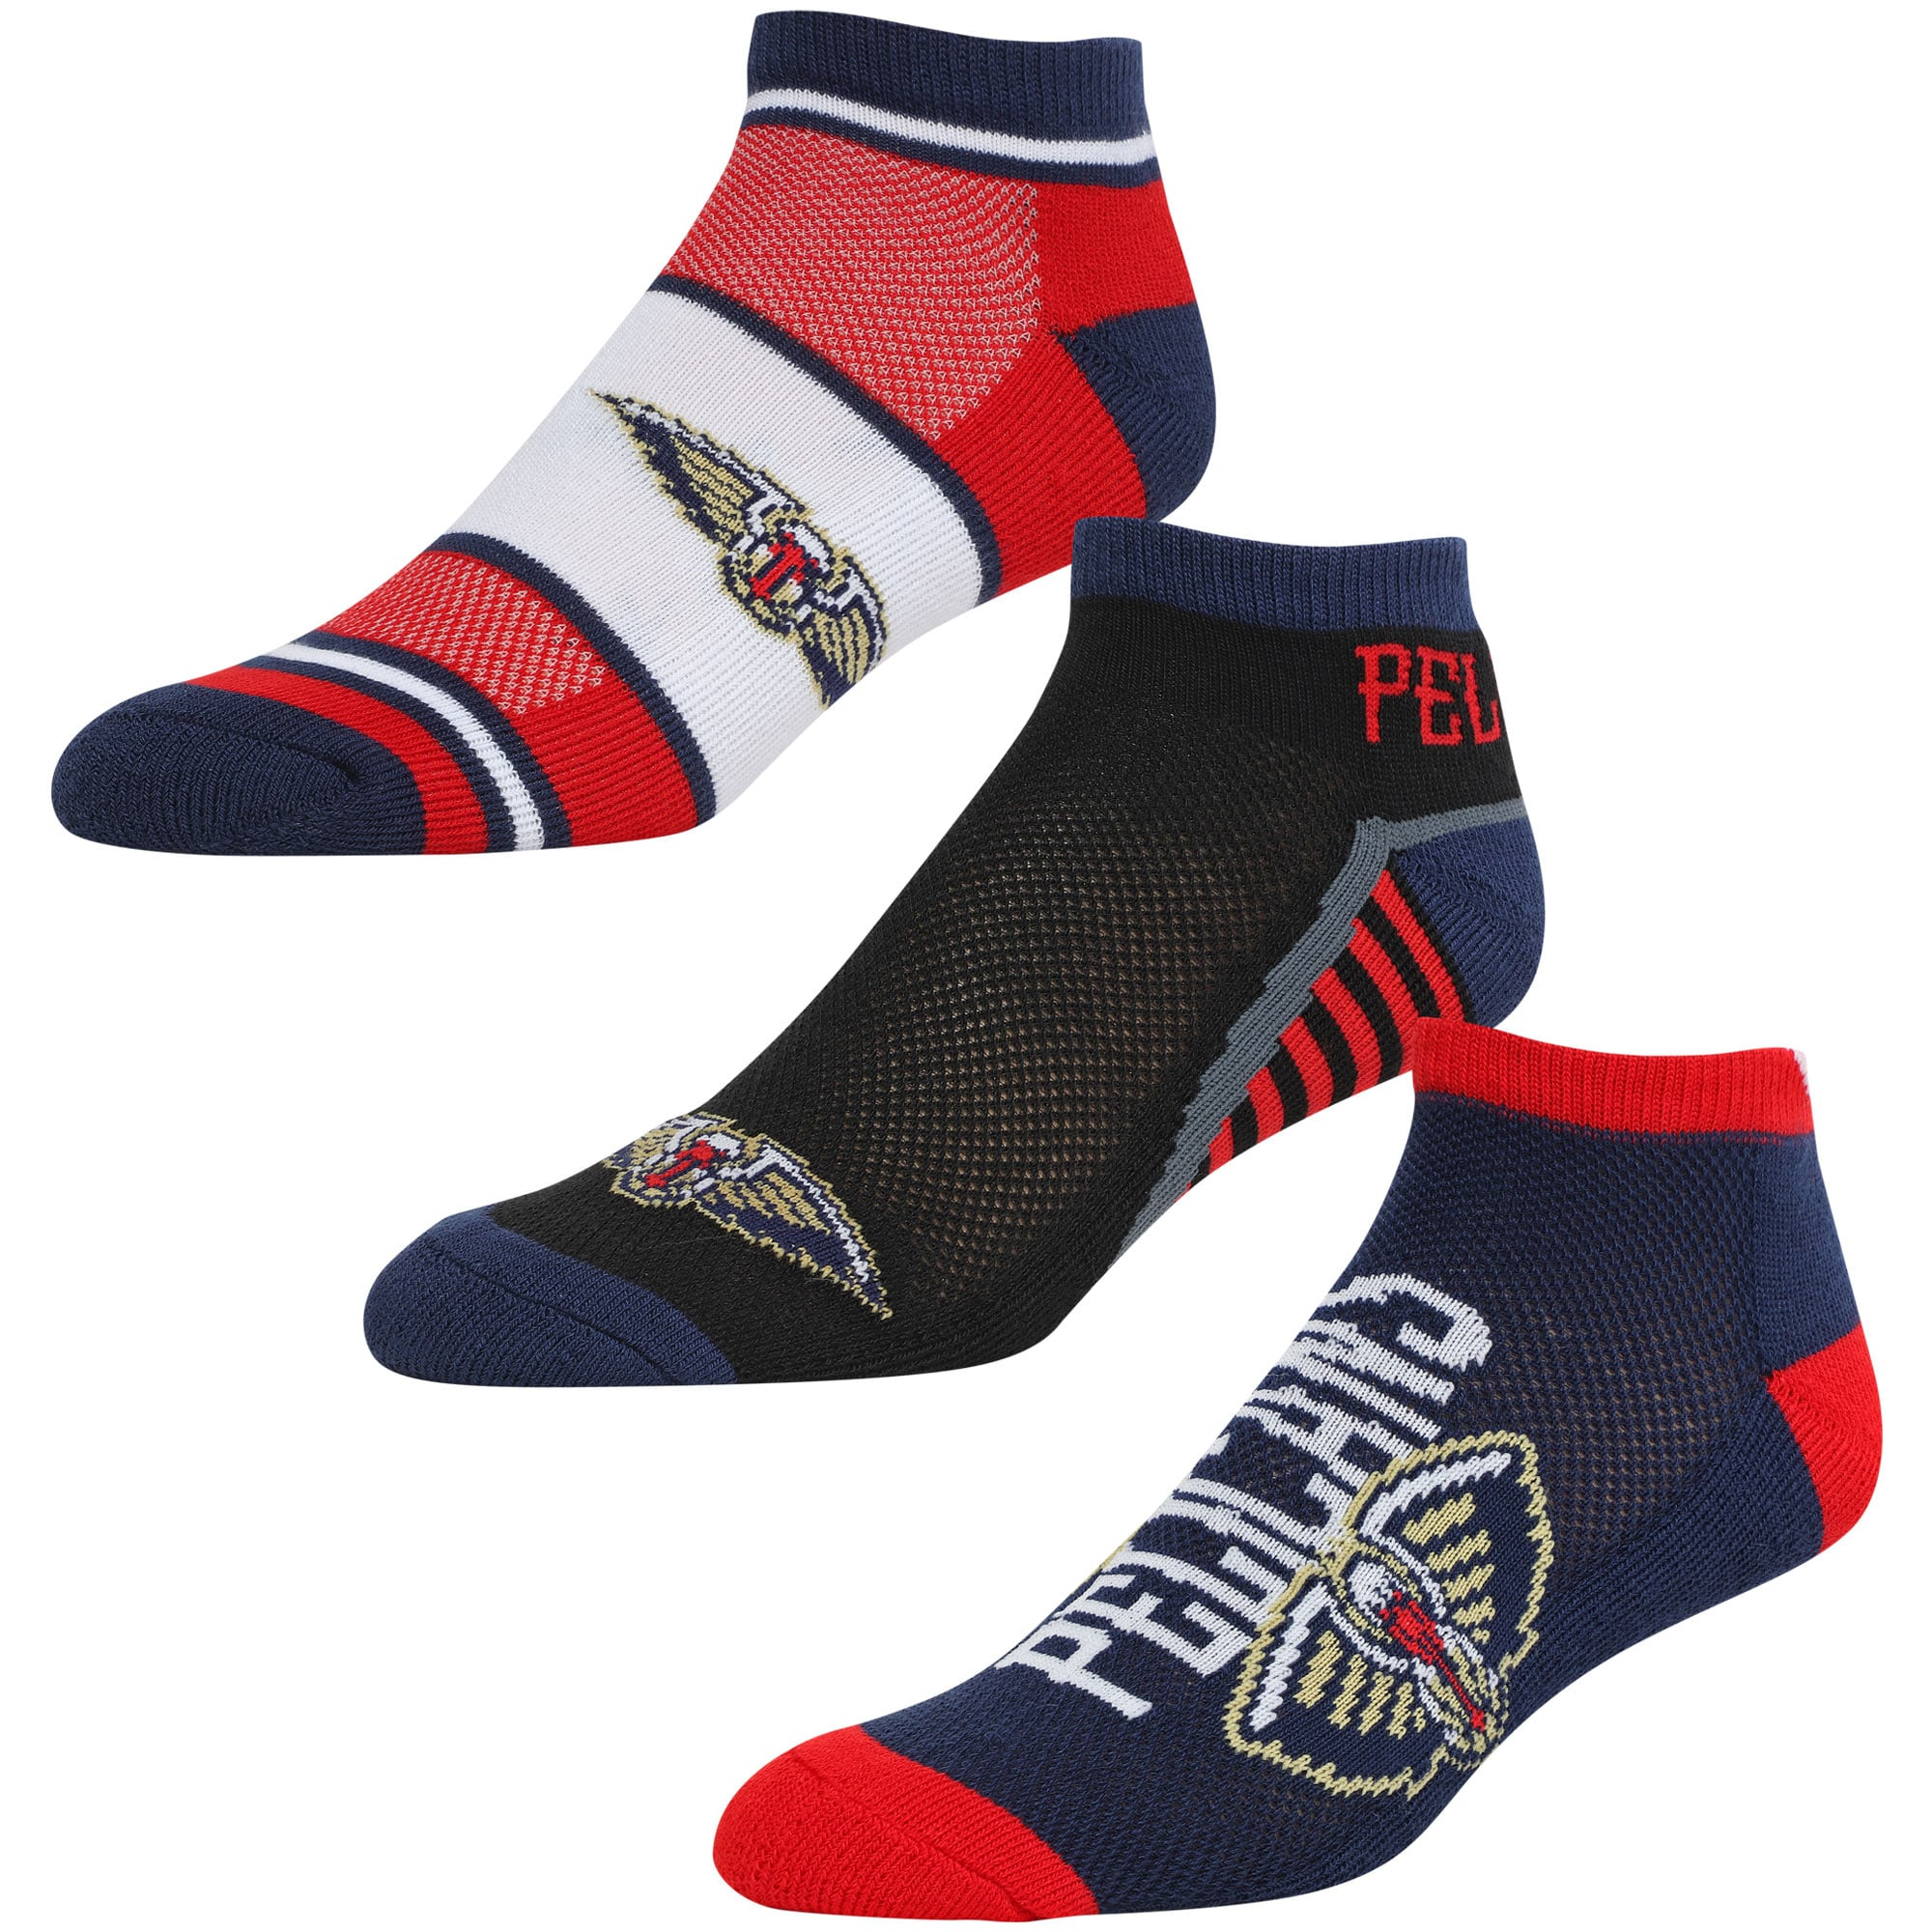 New Orleans Pelicans For Bare Feet Three-Pack Show Me The Money Ankle Socks